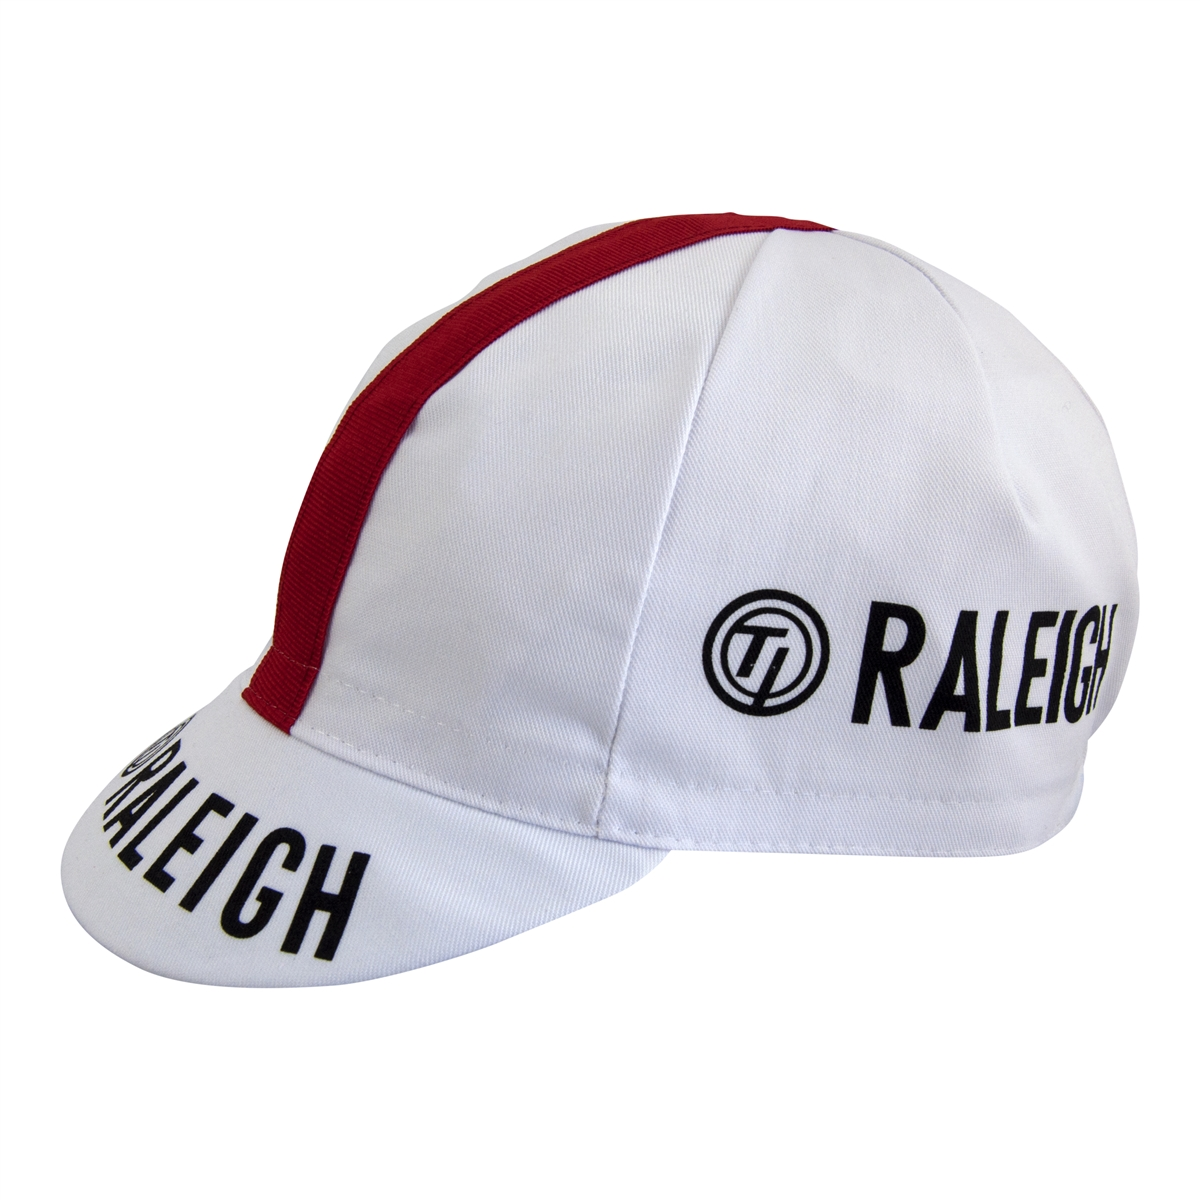 Vintage Raleigh  Cotton Cap One Size Fits All